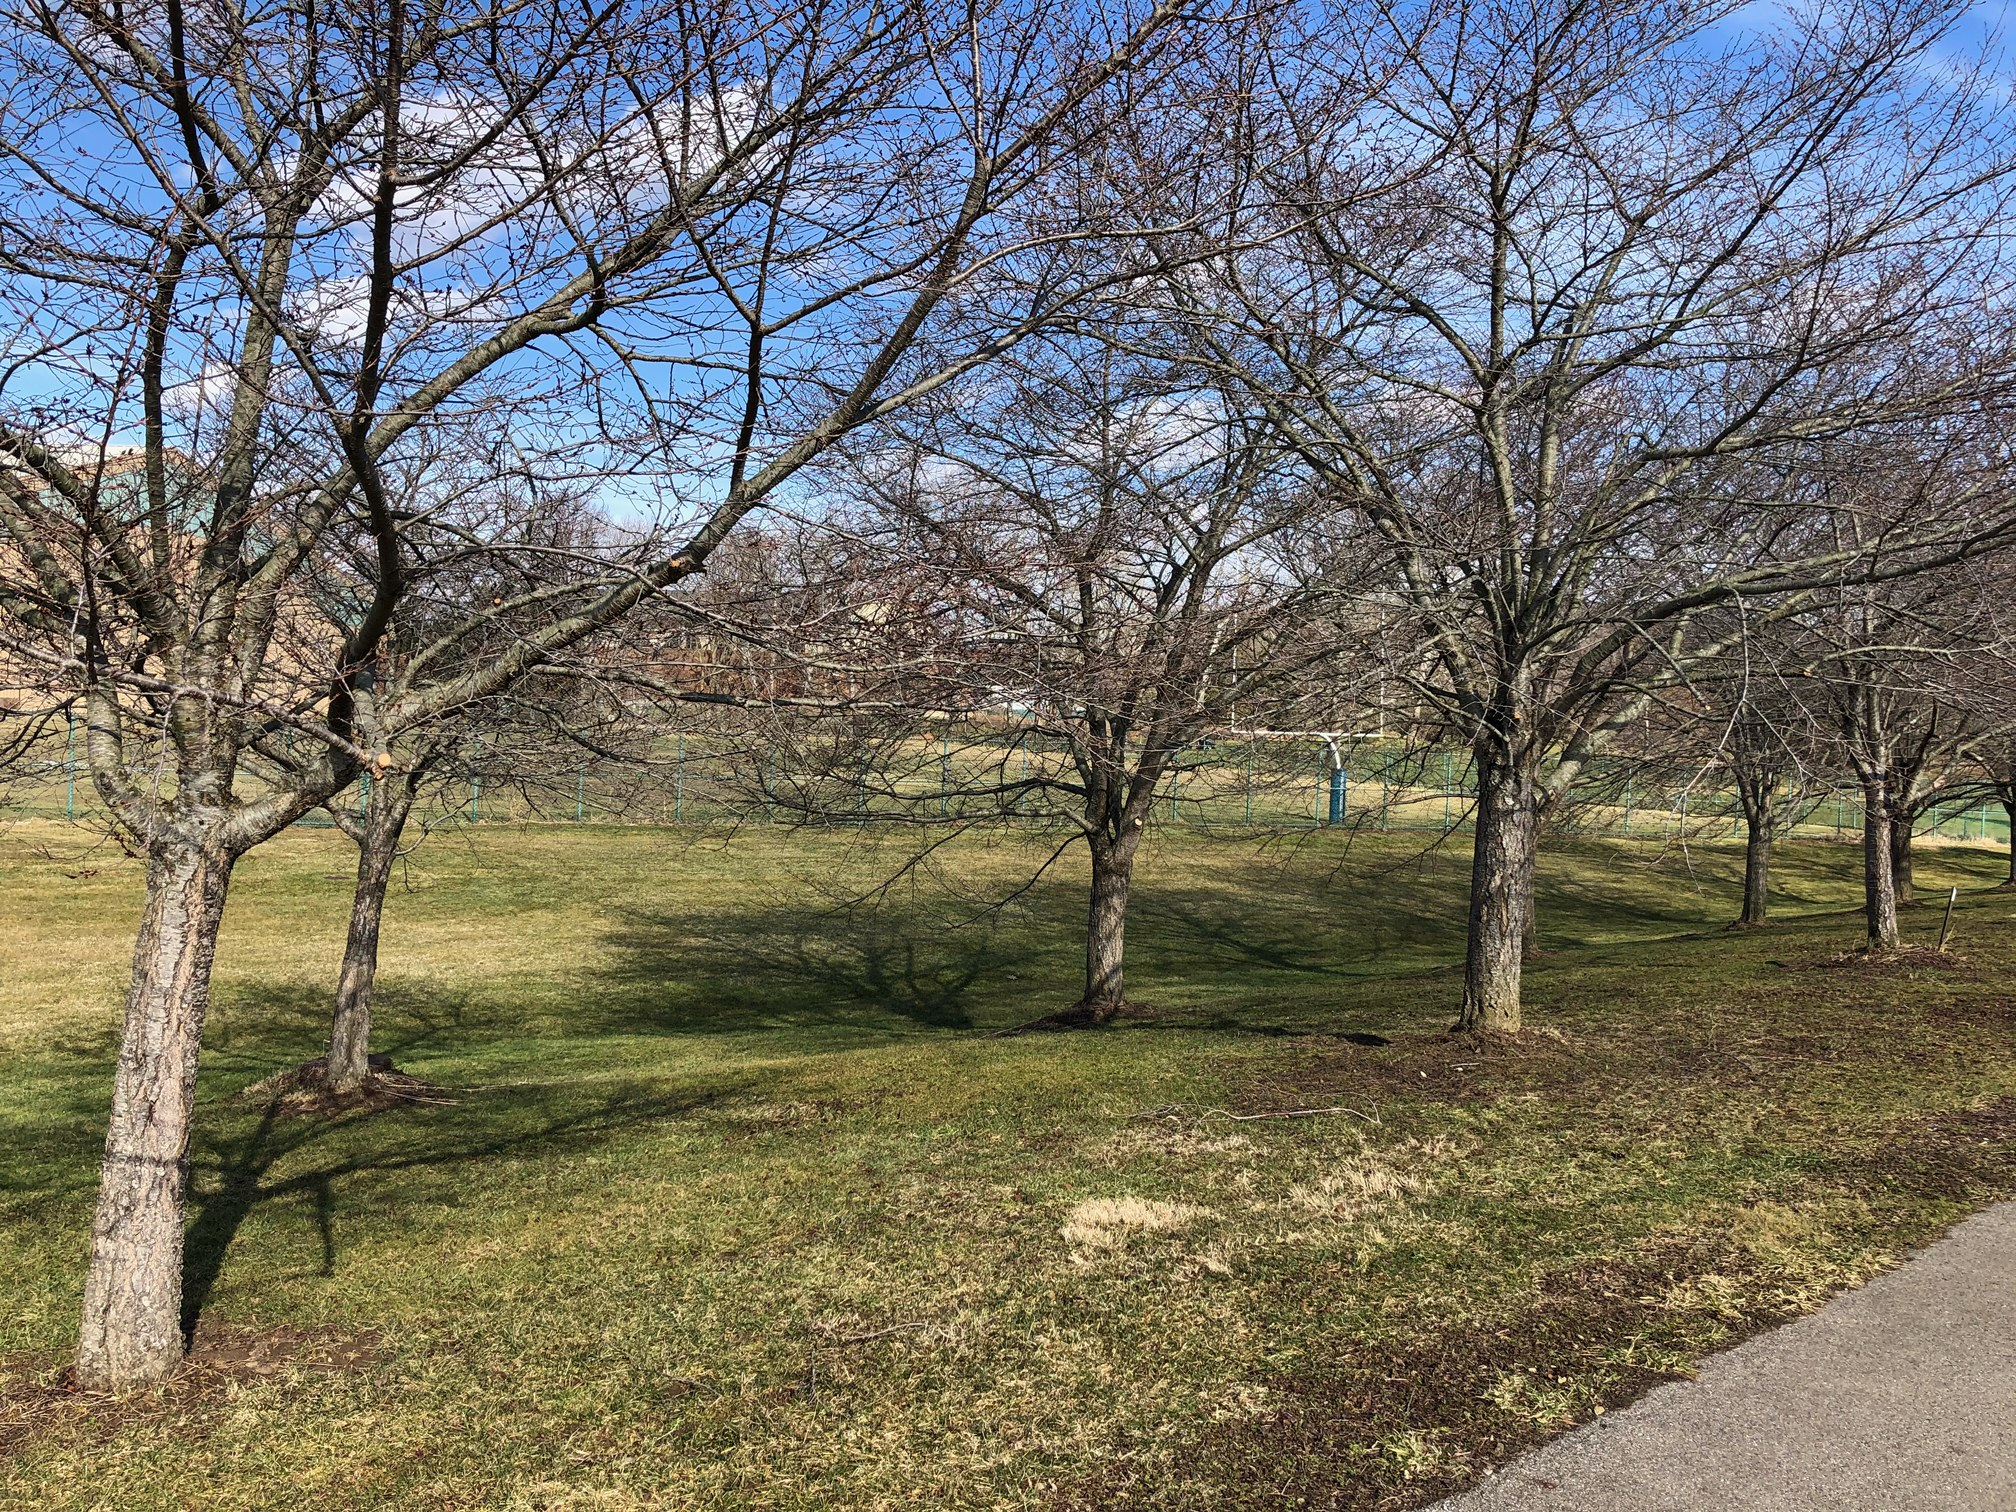 Bare cherry trees on March 1st.